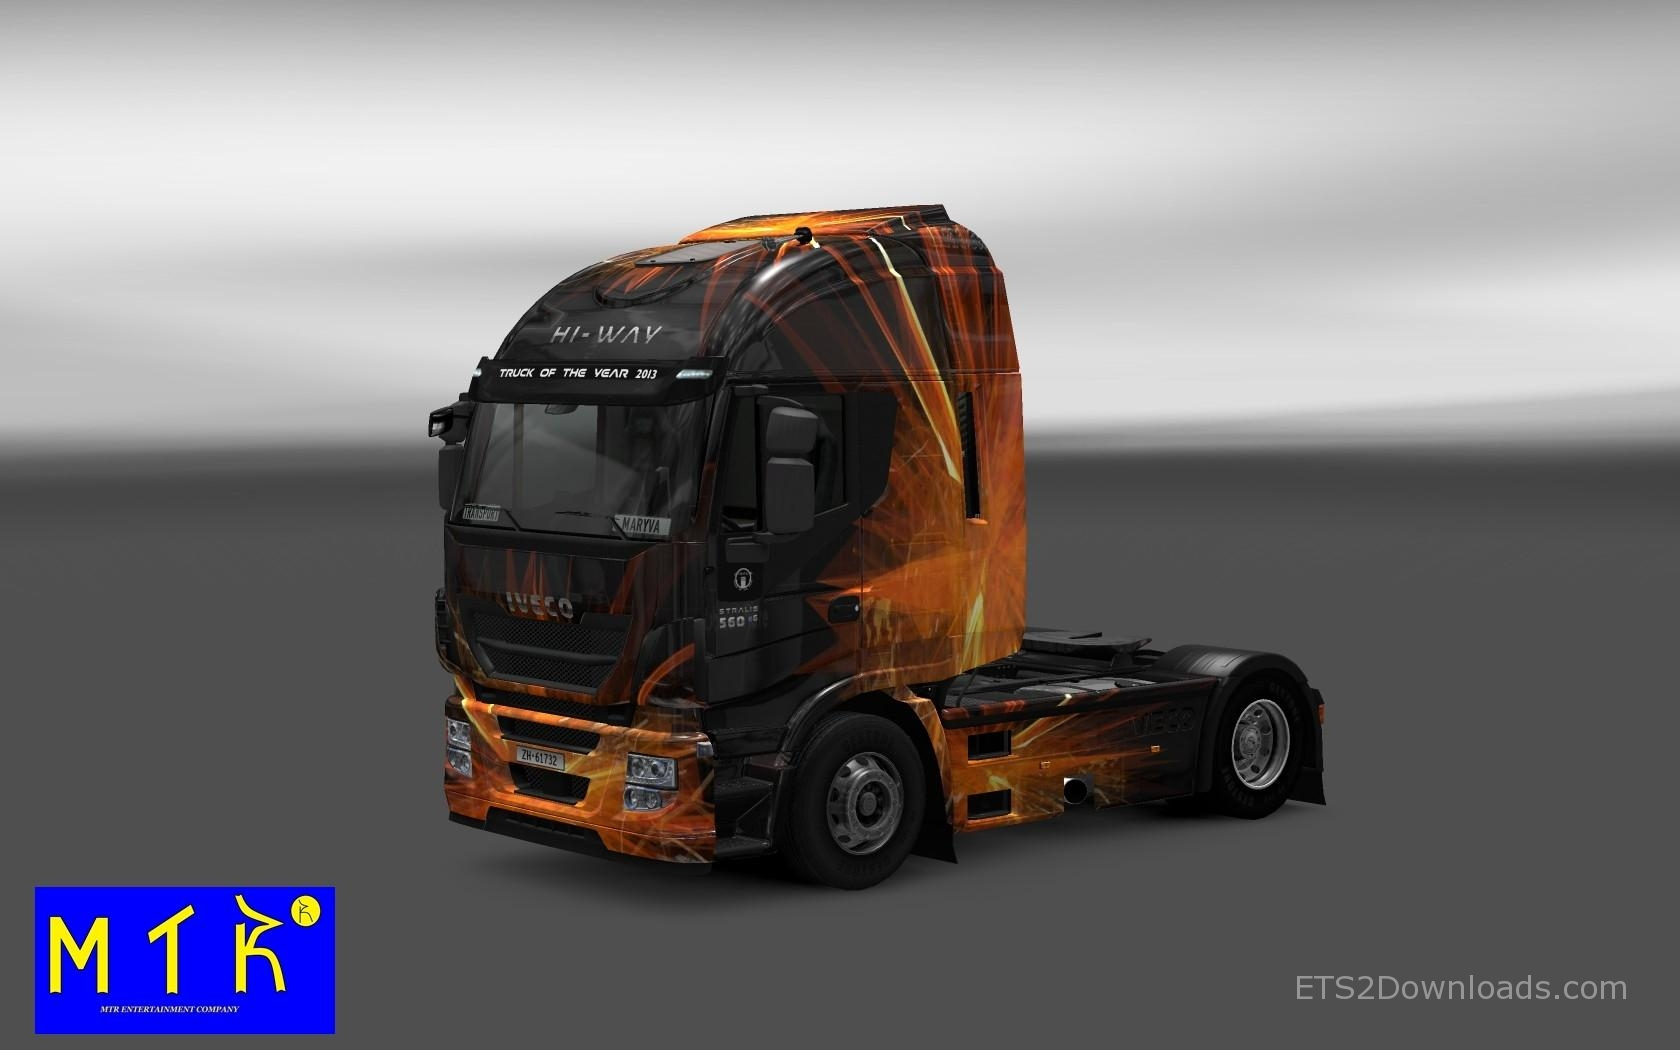 cubical-flare-skin-for-iveco-hi-way-1